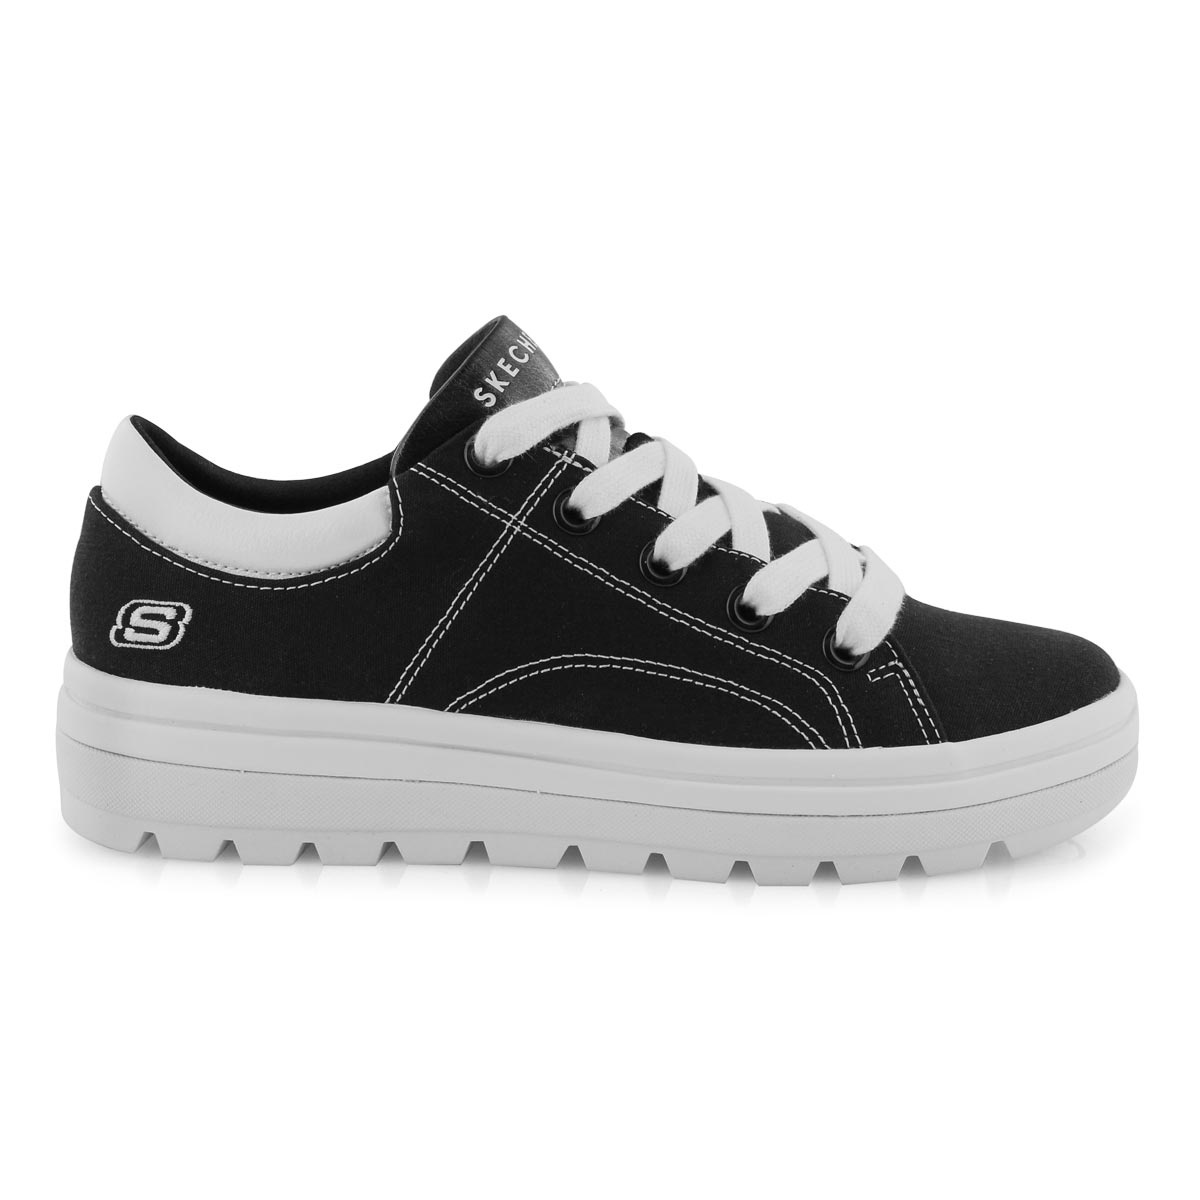 Lds Street Cleats 2 blk fashion snkr